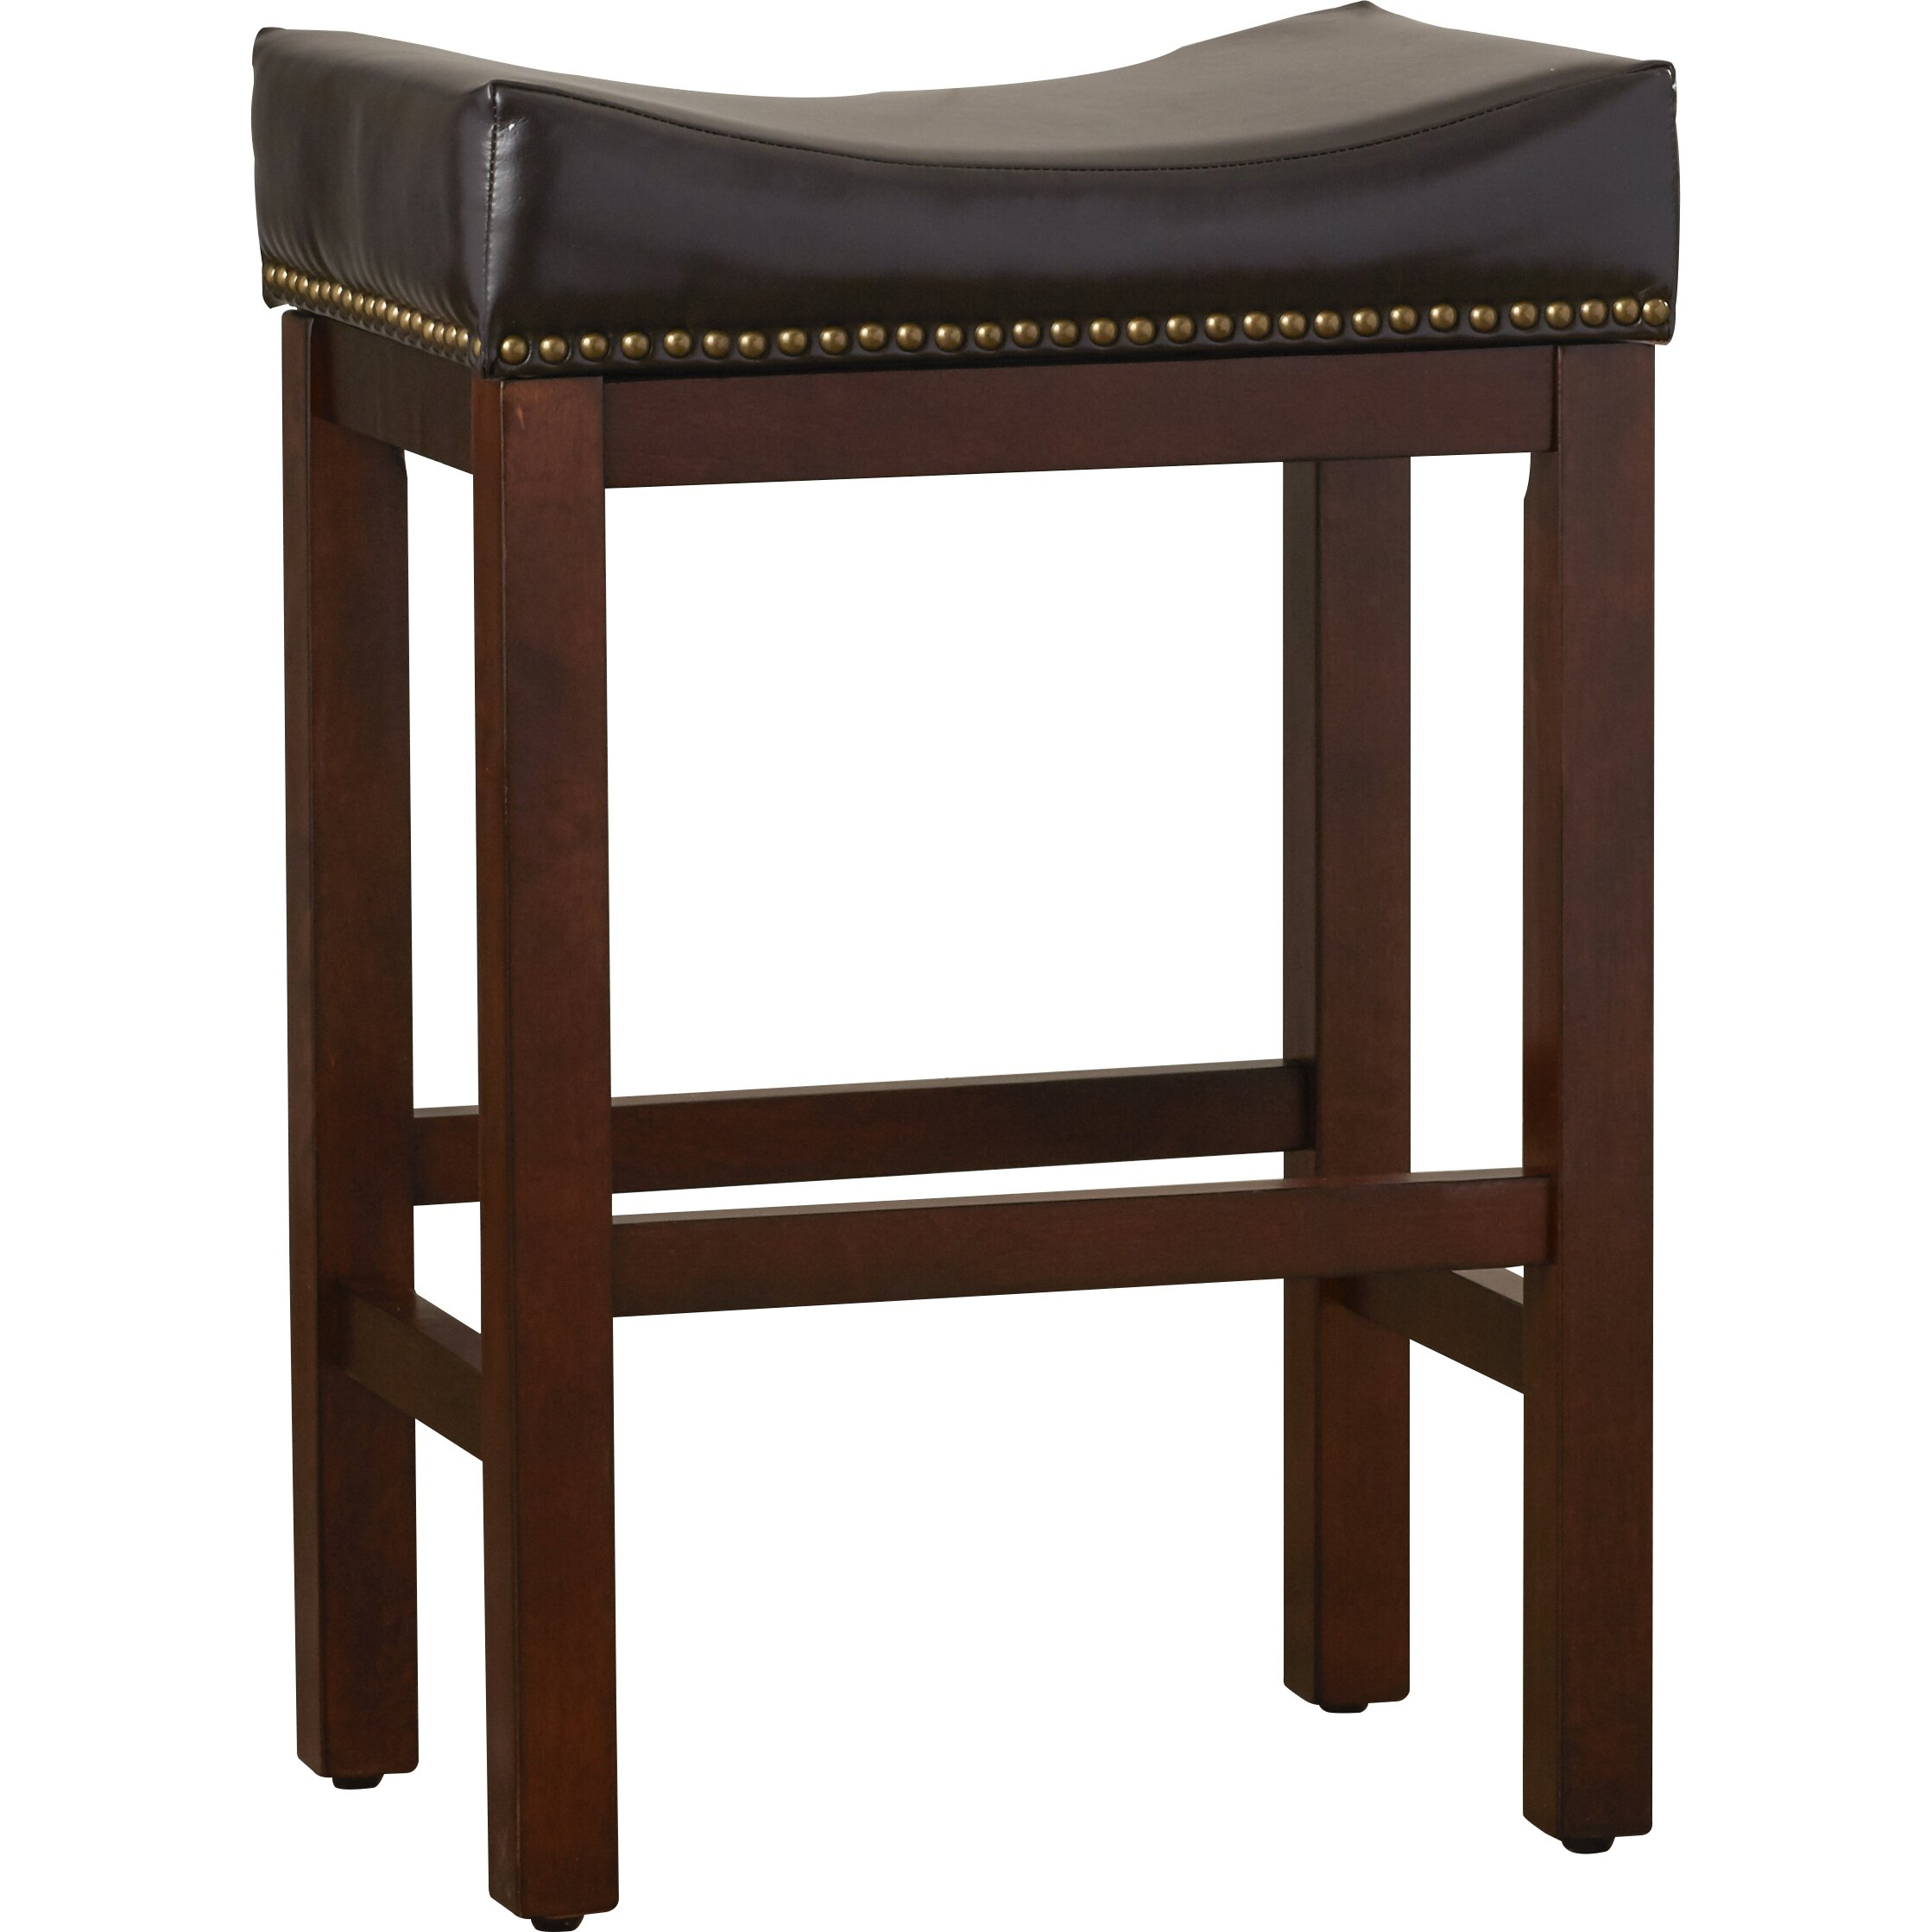 Darby Home Co Nickerson 26quot Bar Stool with Cushion  : Jasper Saddle 26 Bar Stool with Cushion DBHC6572 from www.wayfair.com size 2238 x 2238 jpeg 381kB